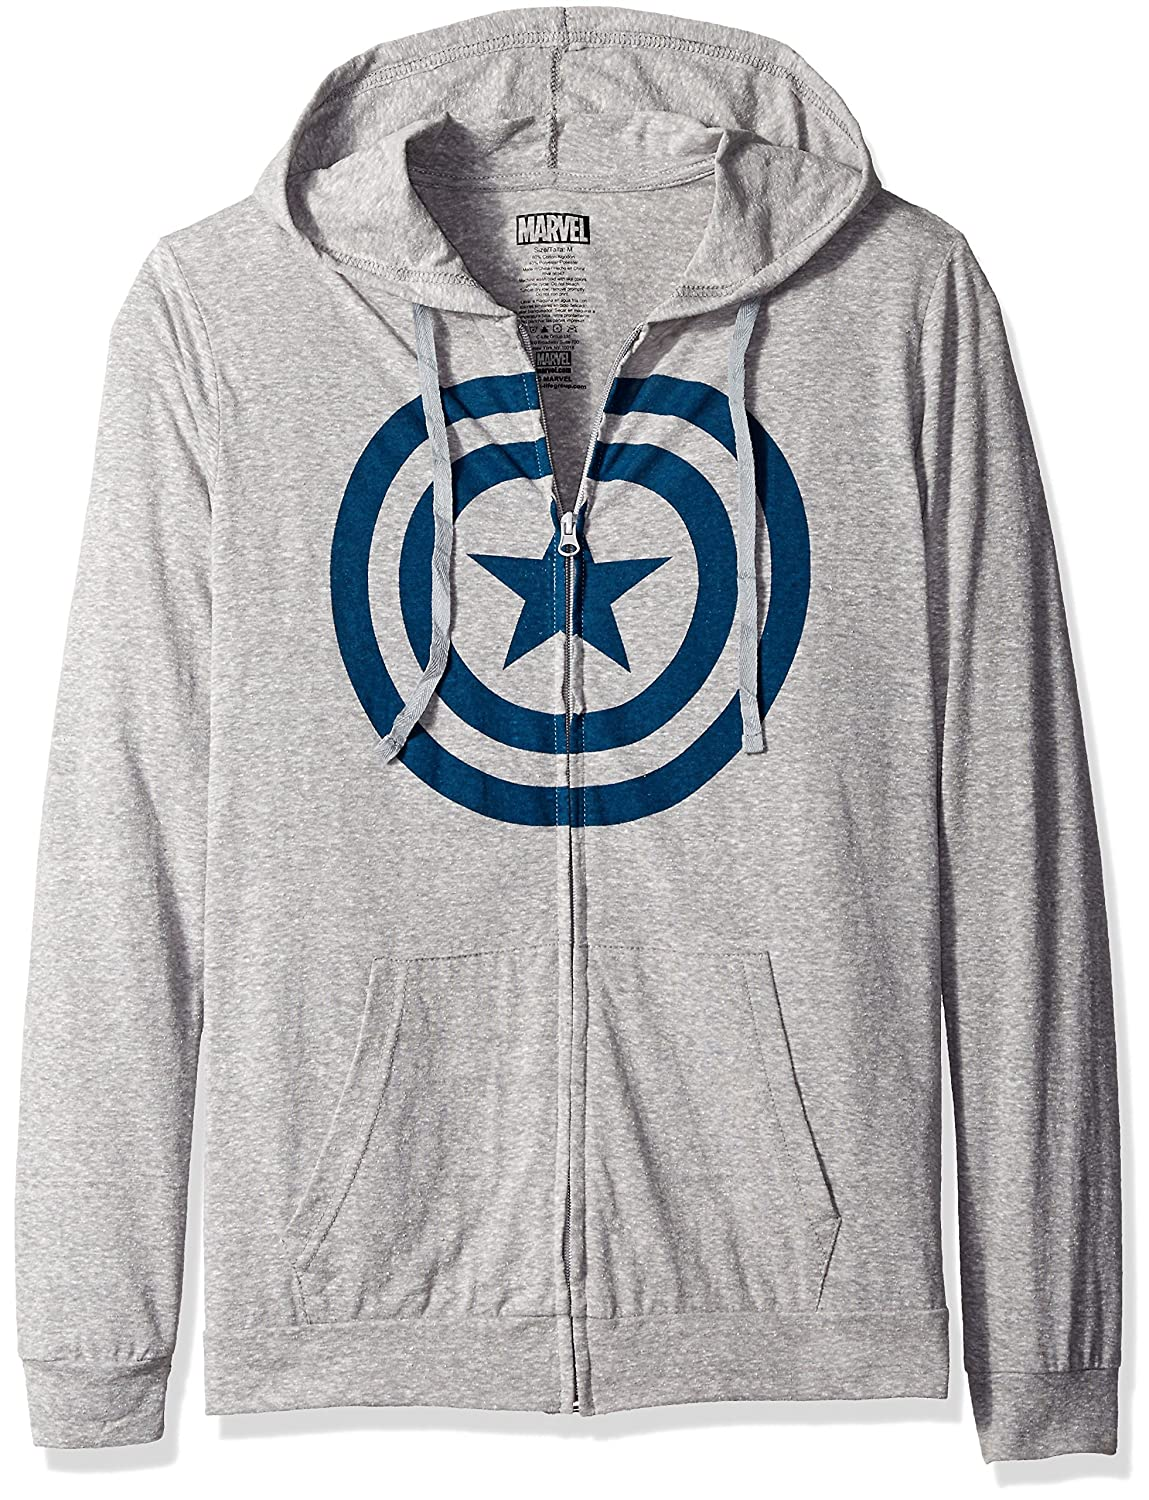 16c51c69524dd Marvel Men's Captain America Lightweight Hoodie at Amazon Men??